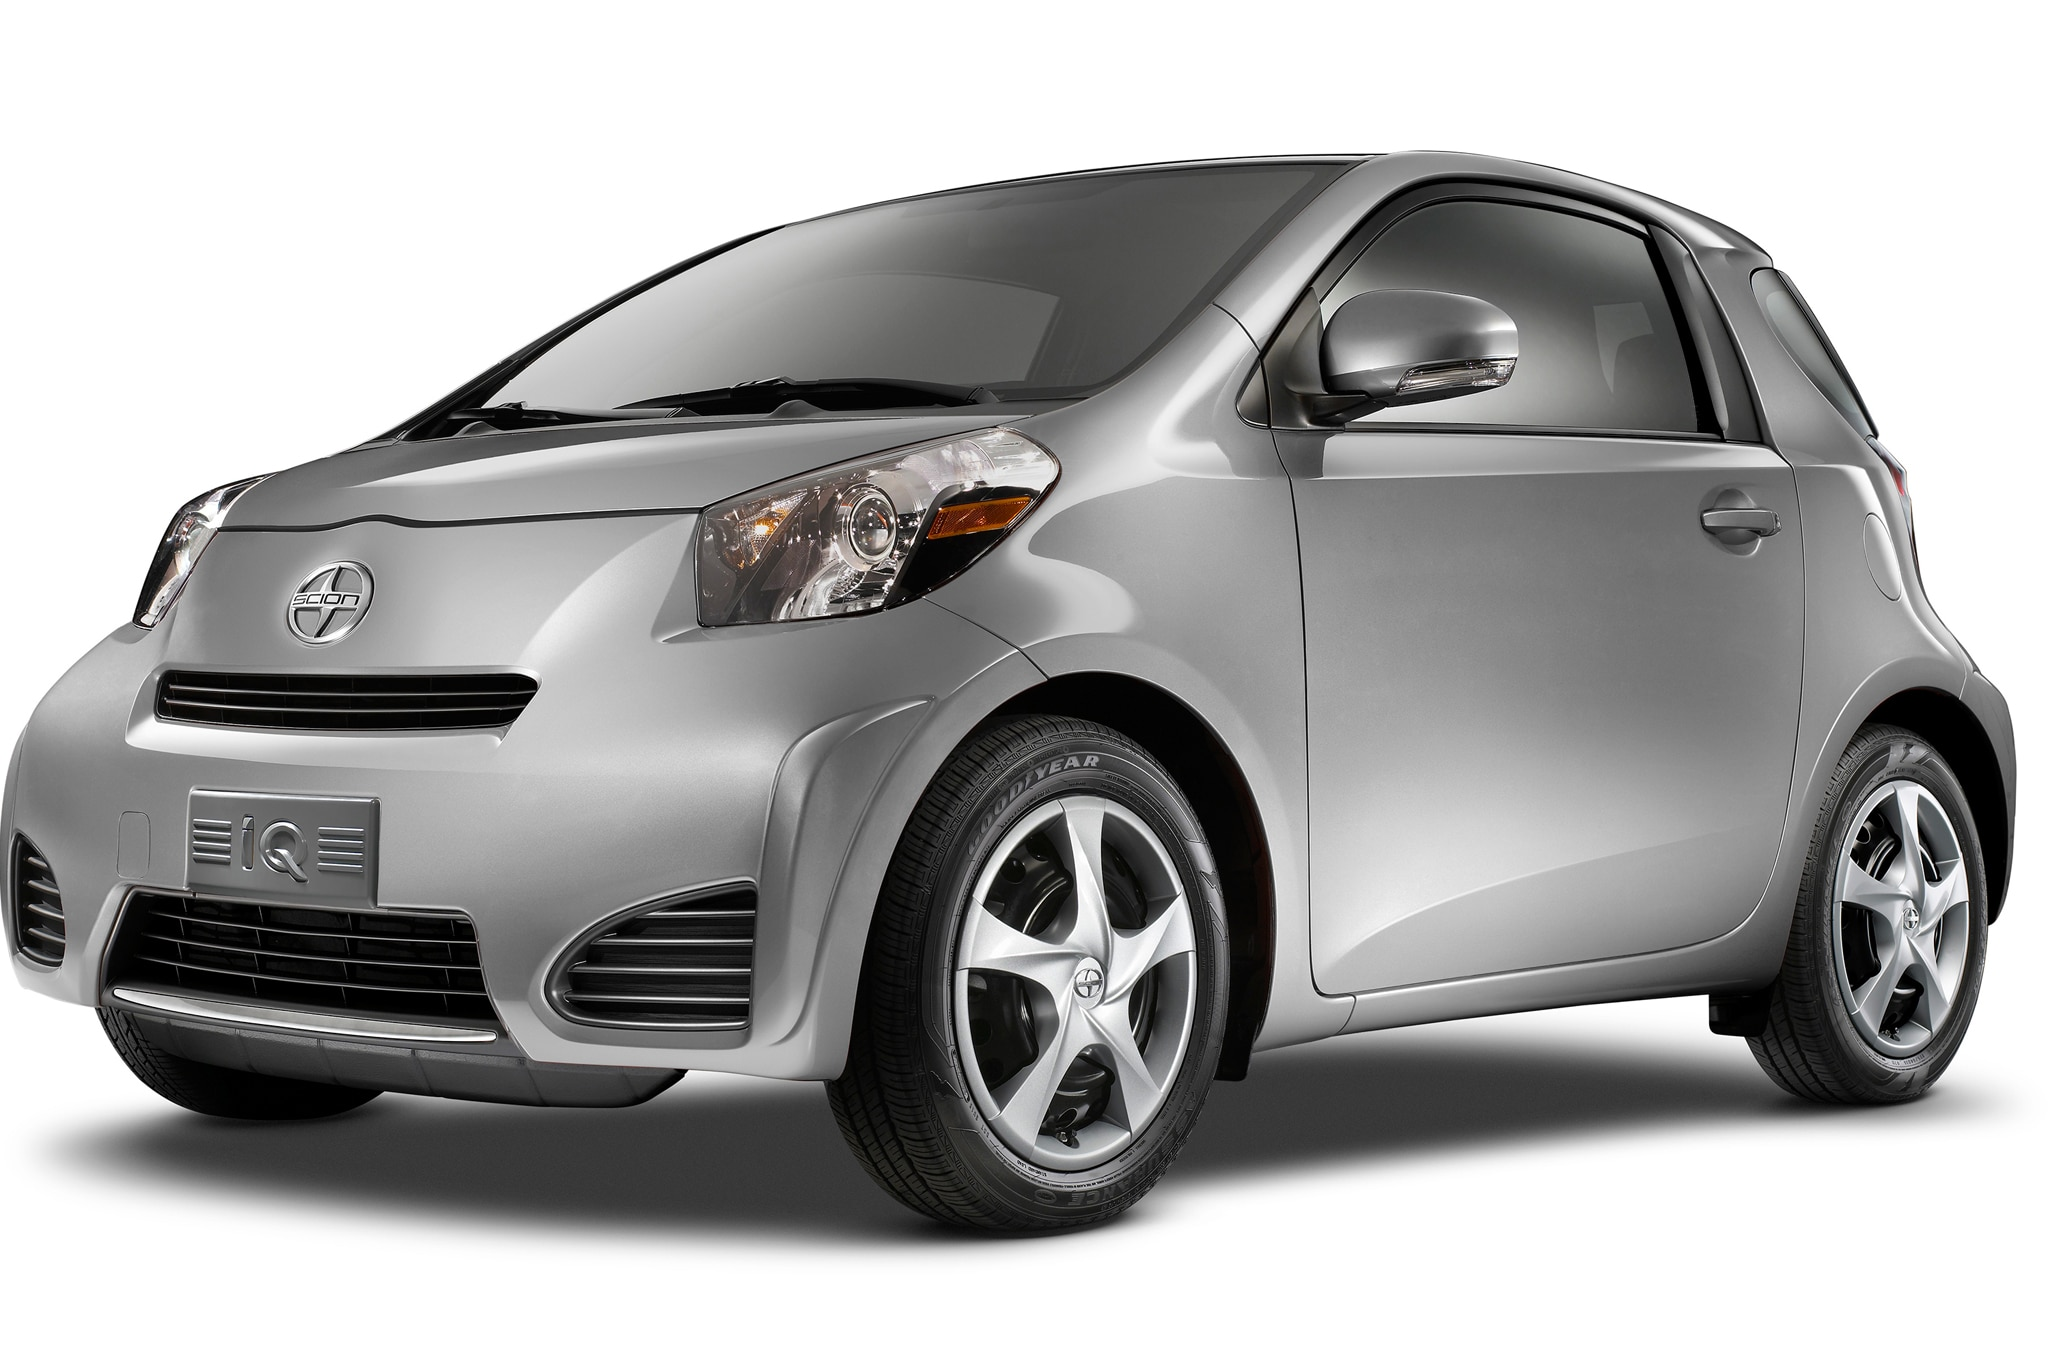 scion im concept headed to production slated for new york debut. Black Bedroom Furniture Sets. Home Design Ideas